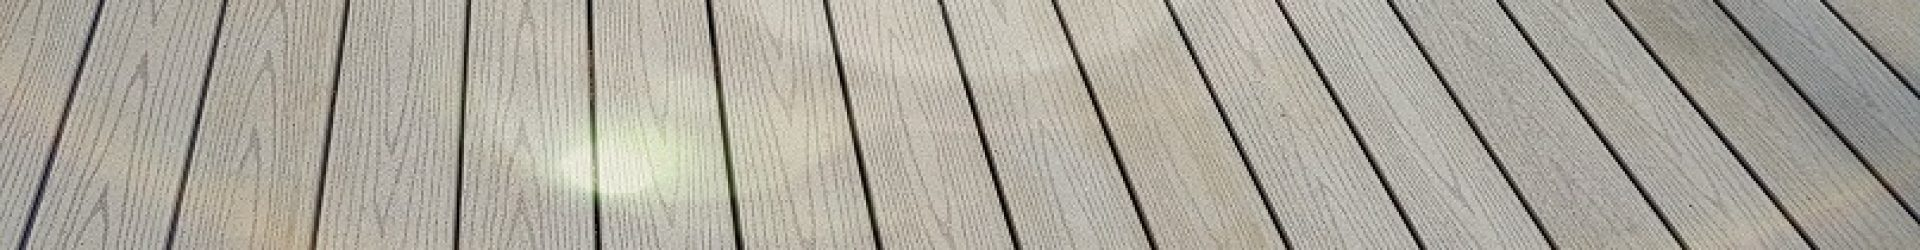 What makes composite decking eco-friendly?